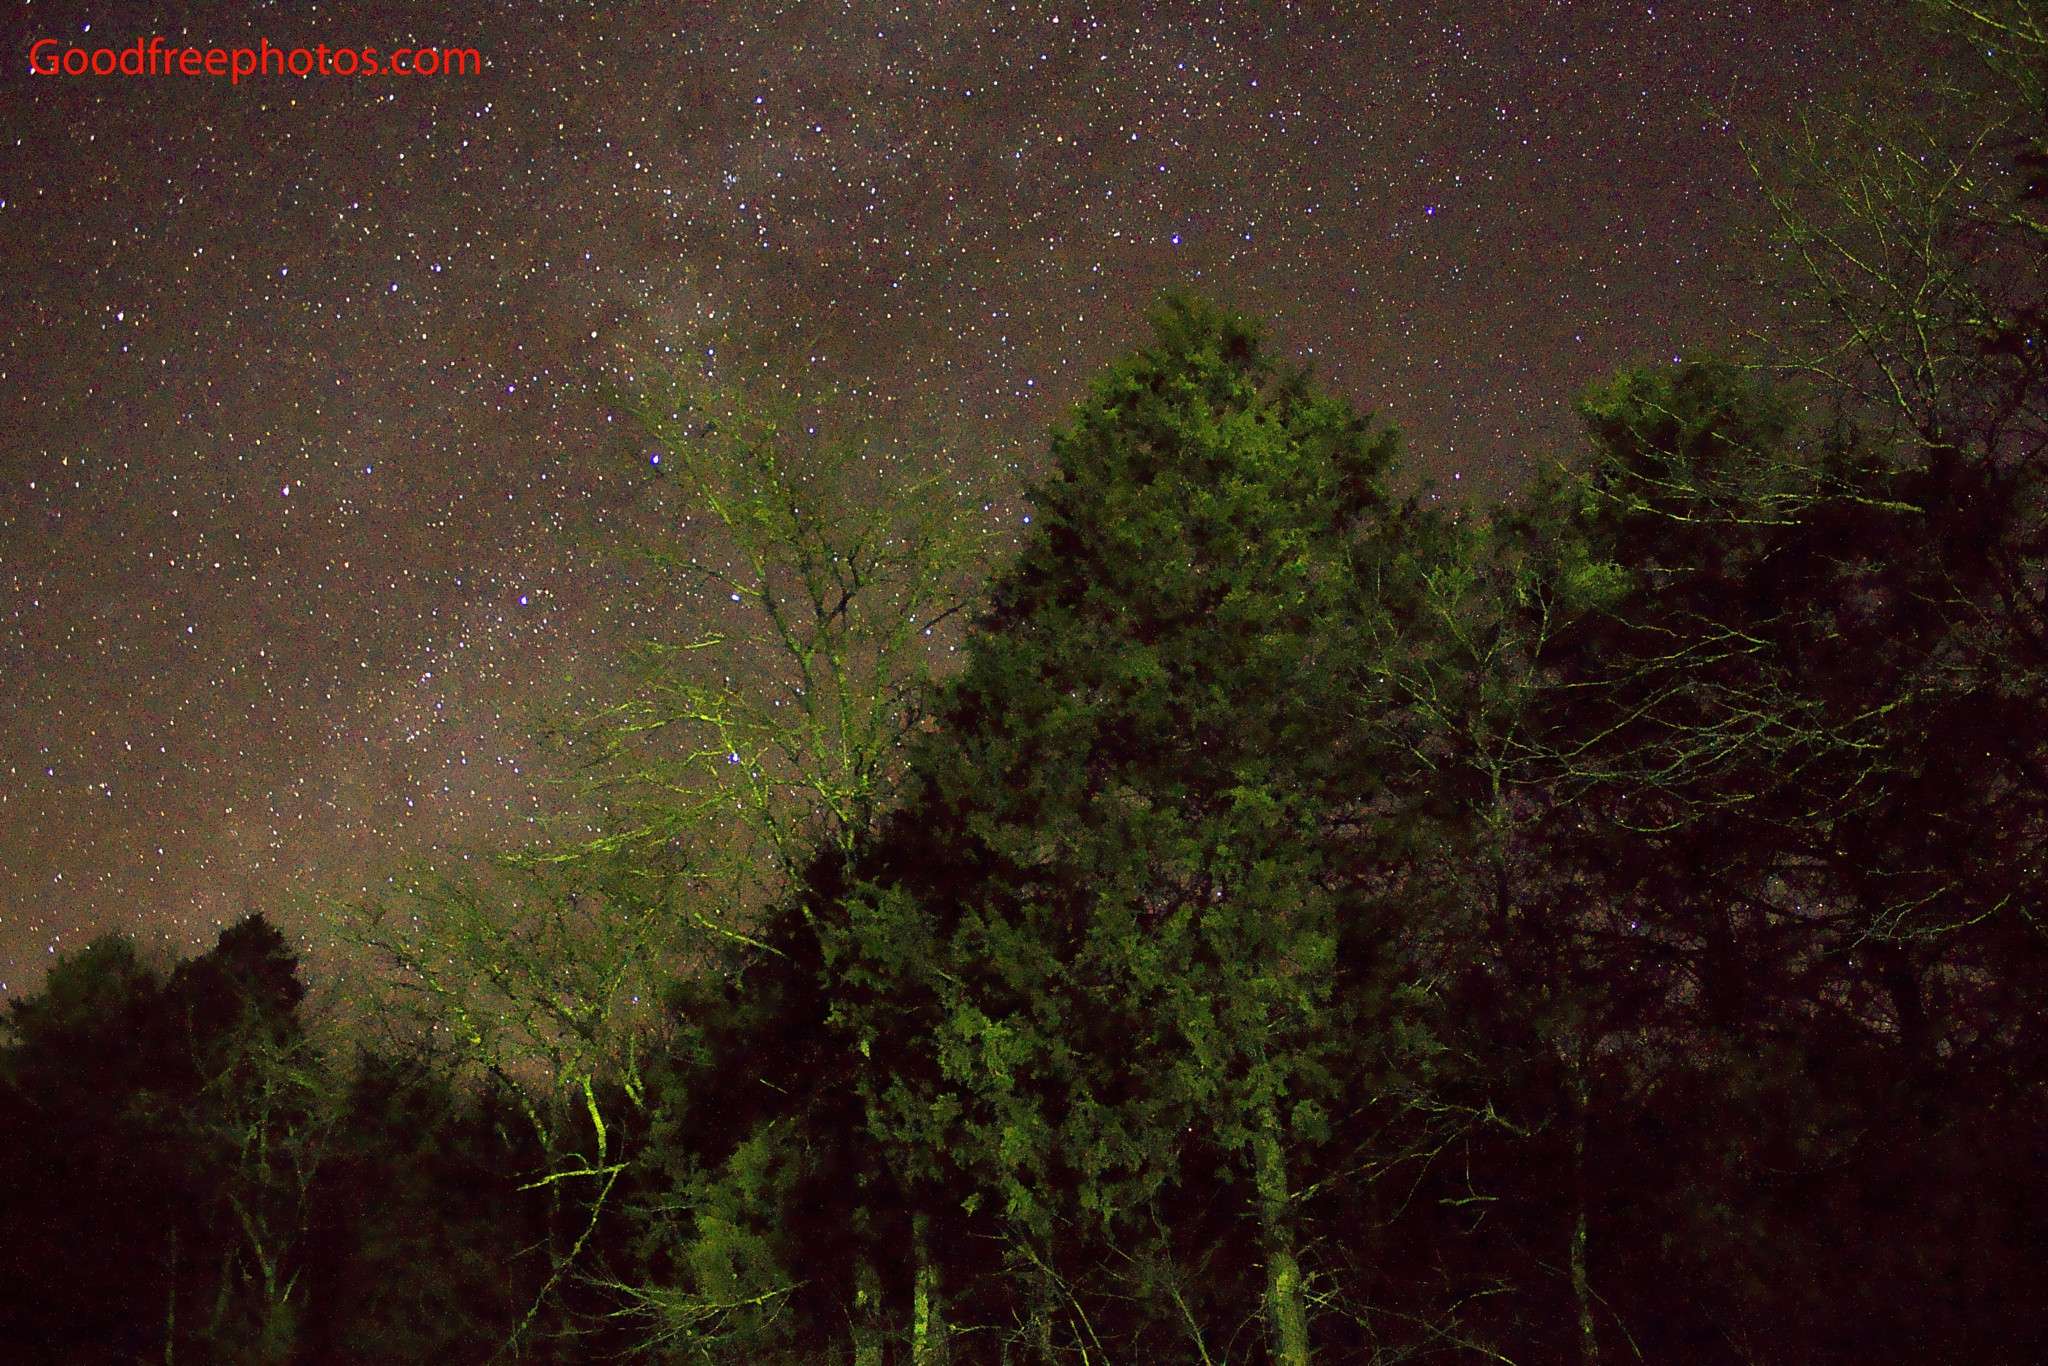 Stars over the trees at Ozark National Scenic Riverways by Archbob